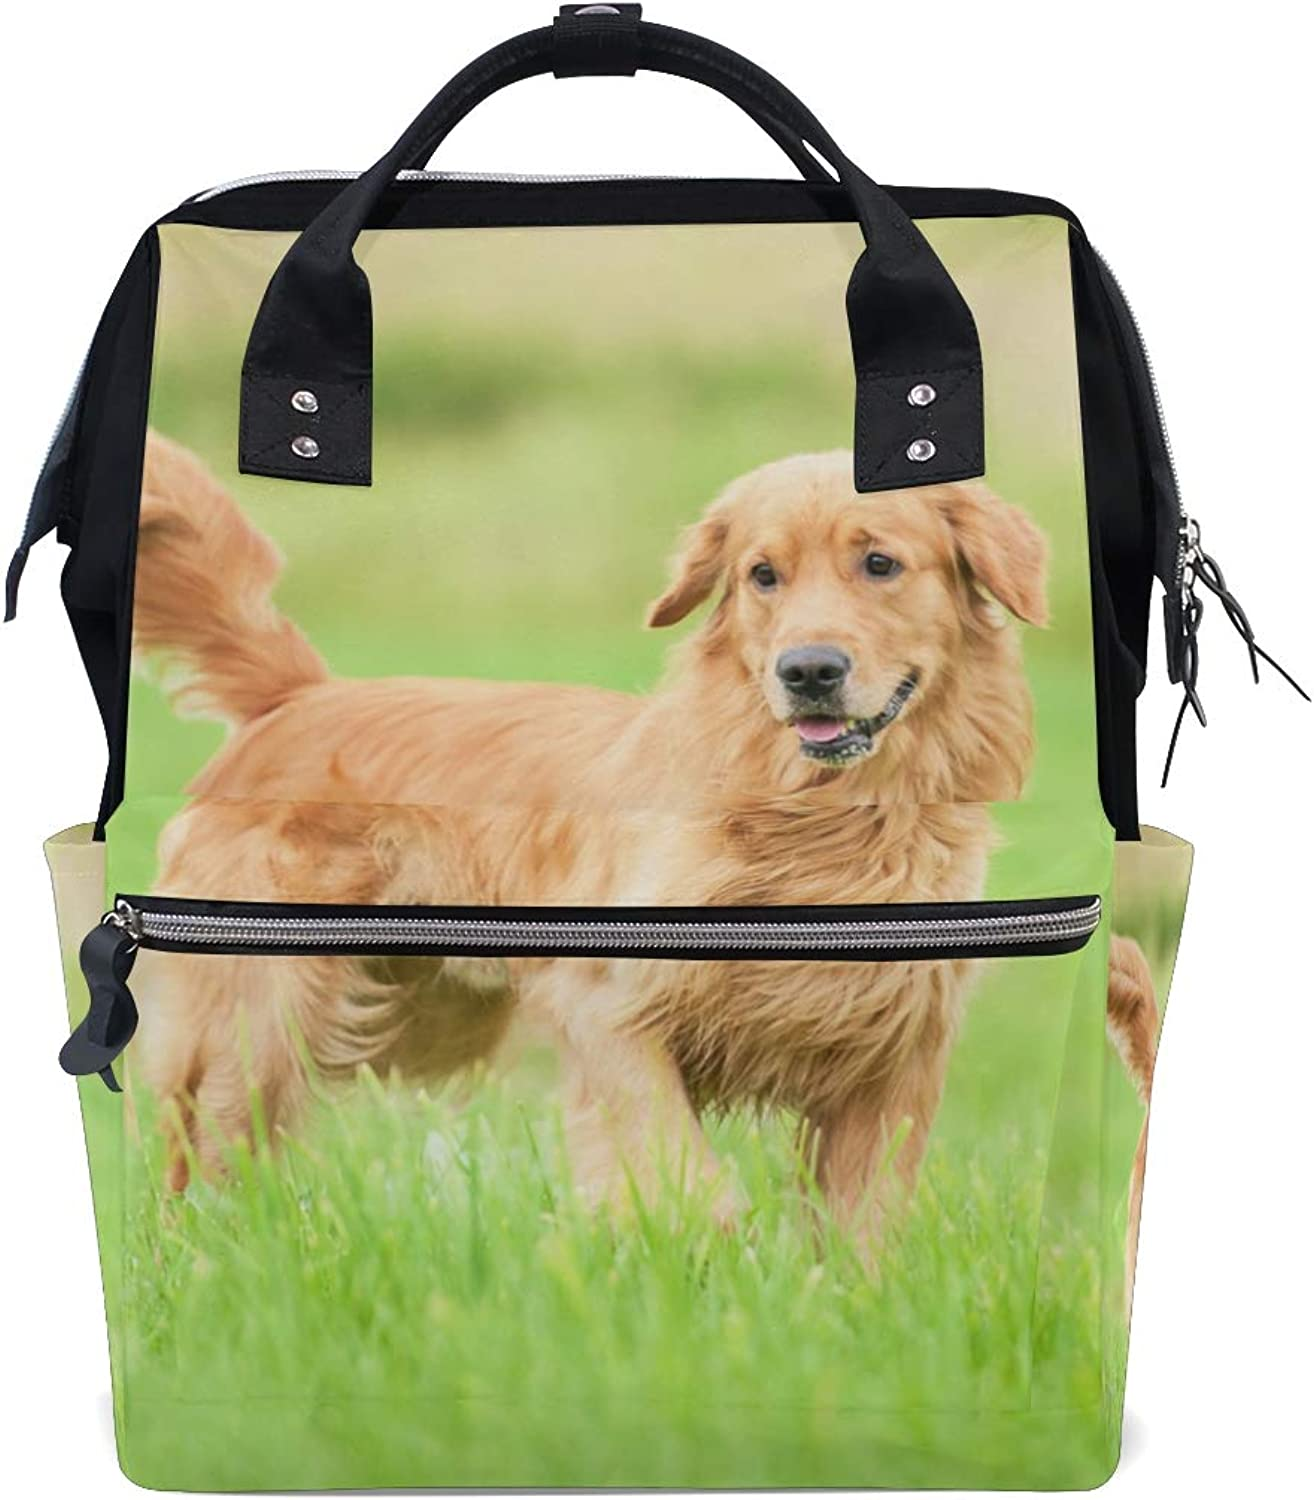 ColourLife Diaper bag Backpack golden Retriever Running On Grass Tote Bag Casual Daypack Multifunctional Nappy Bags